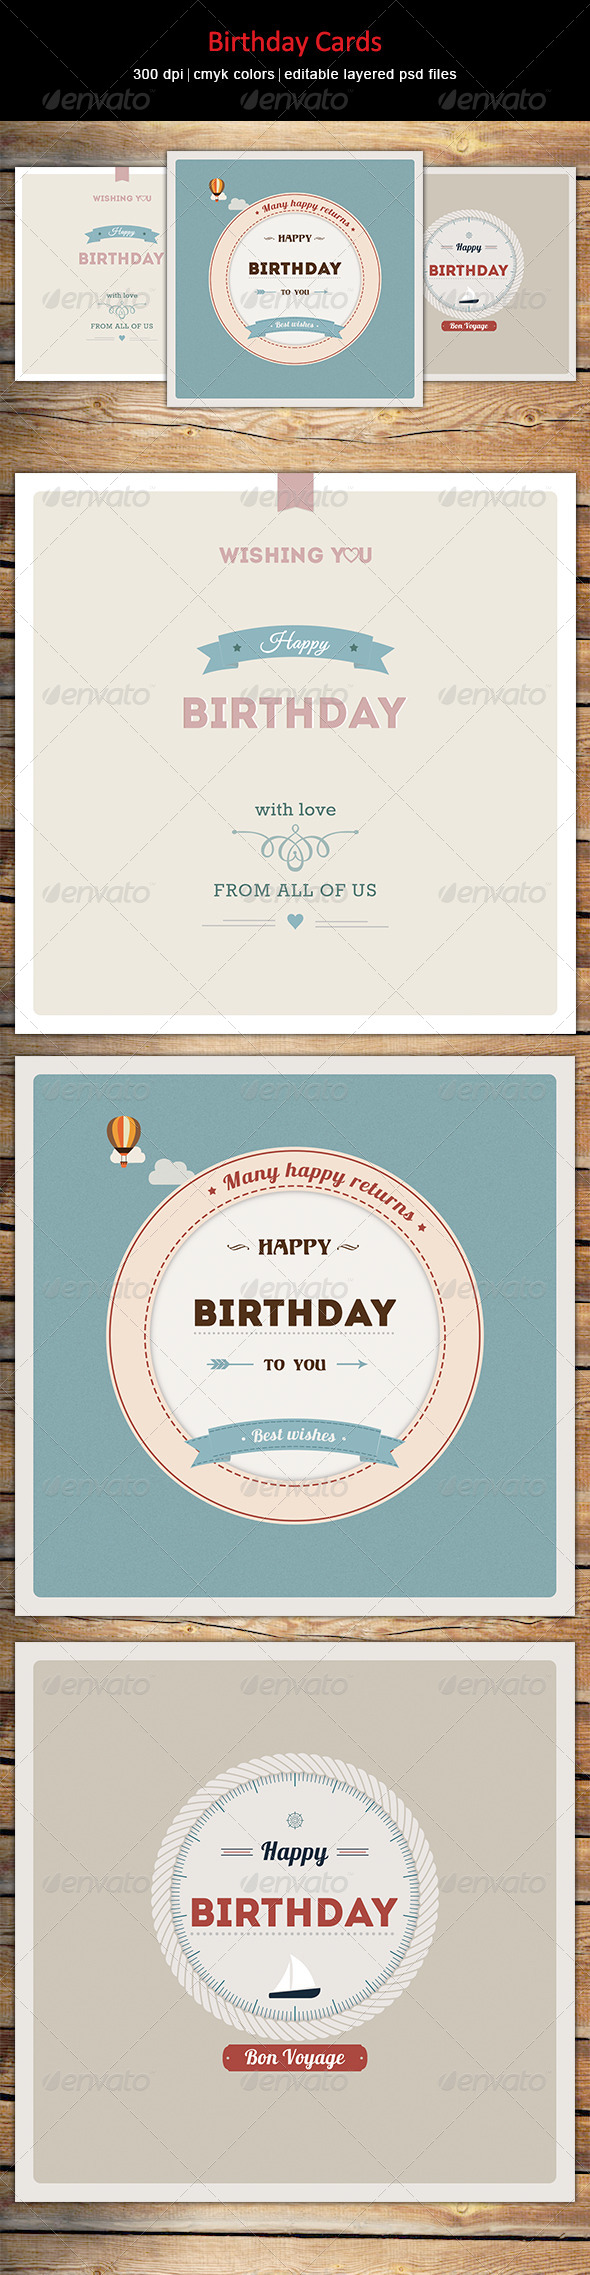 GraphicRiver Birthday Cards 7864255